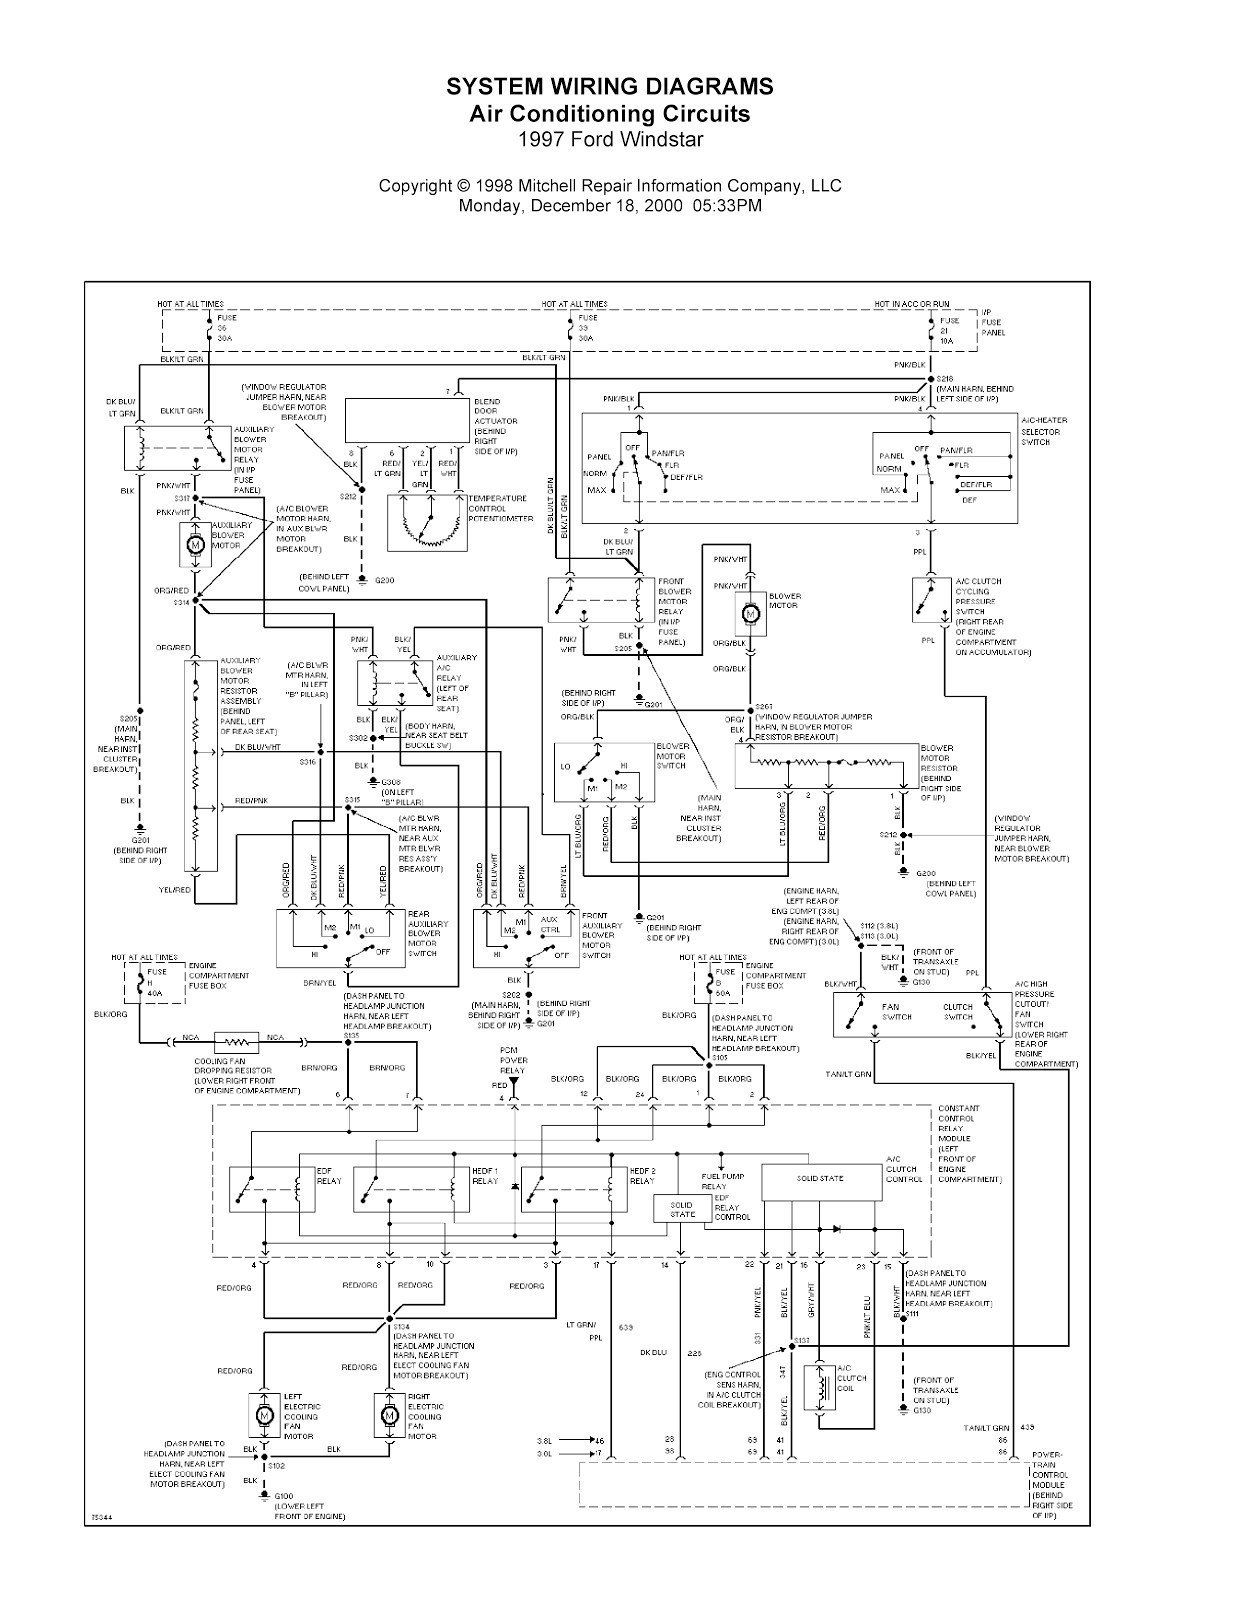 2003 Ford Escape Engine Diagram Wiring Library. 2003 Ford Windstar Wiring Diagram Radio Daigram Remarkable 2000 Of. Ford. Air Conditioner 2003 Ford Explorer Dash Diagram At Scoala.co